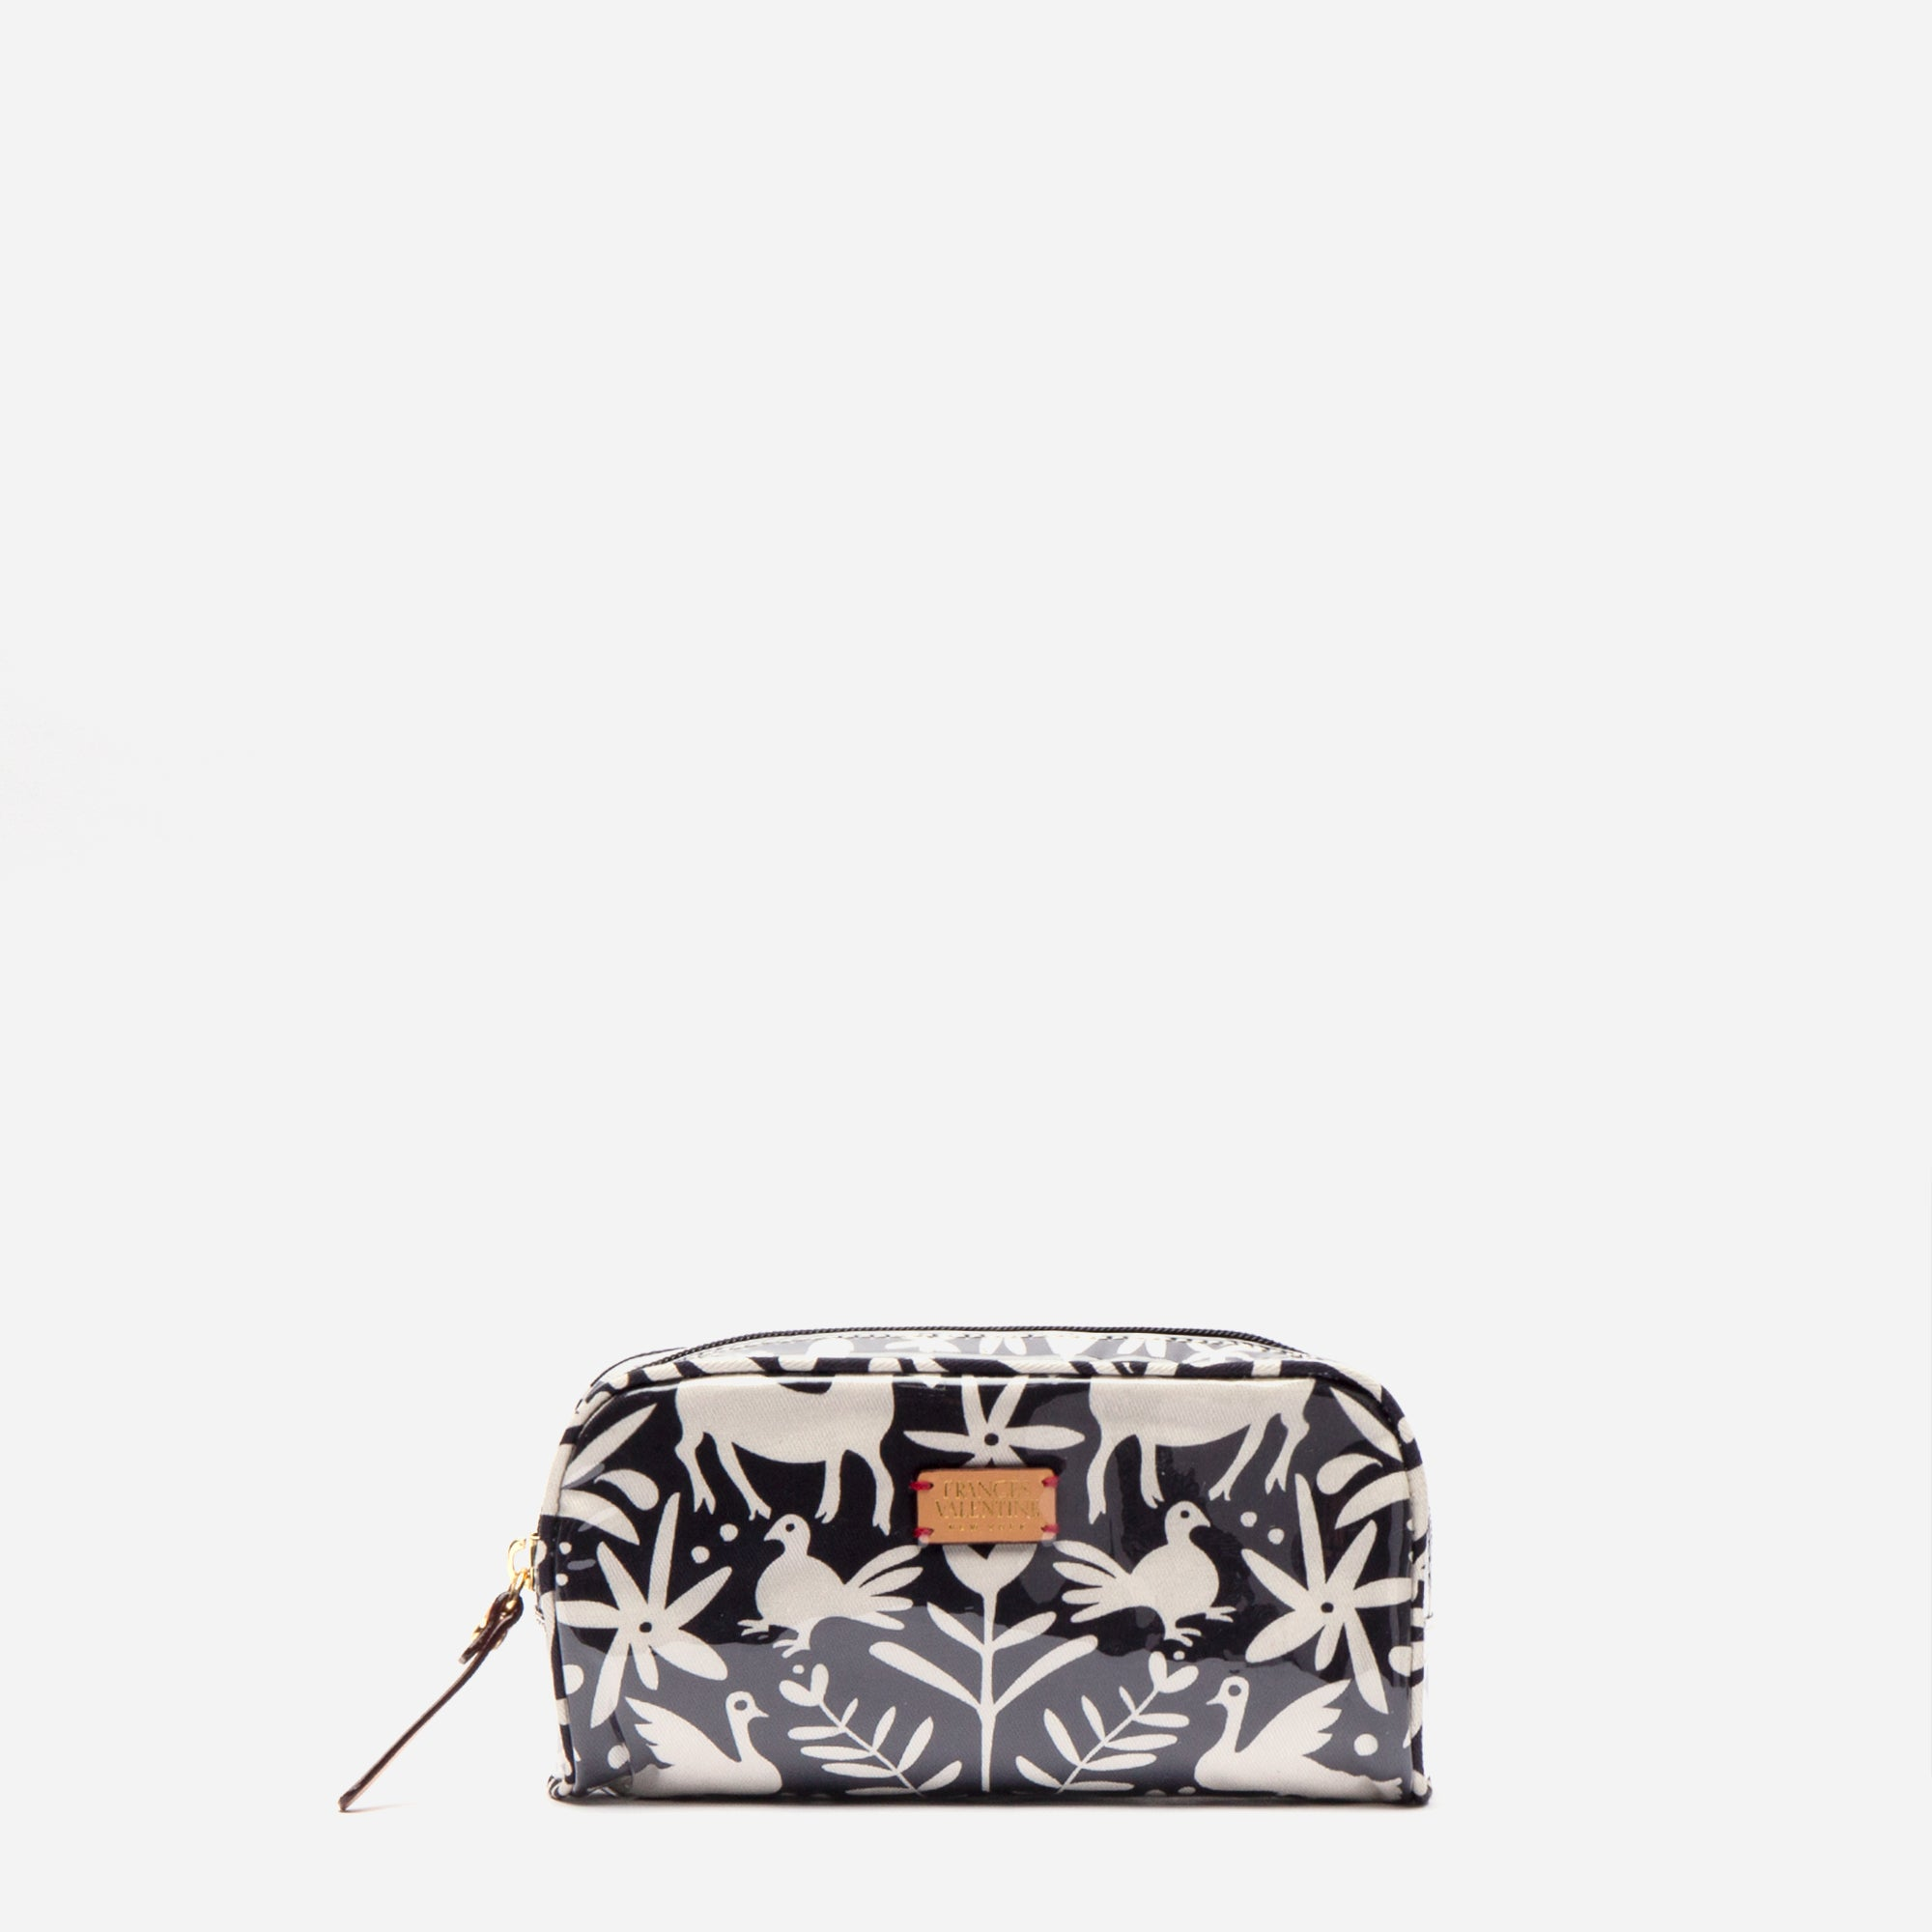 Small Cosmetic Otomi Print Black - Frances Valentine